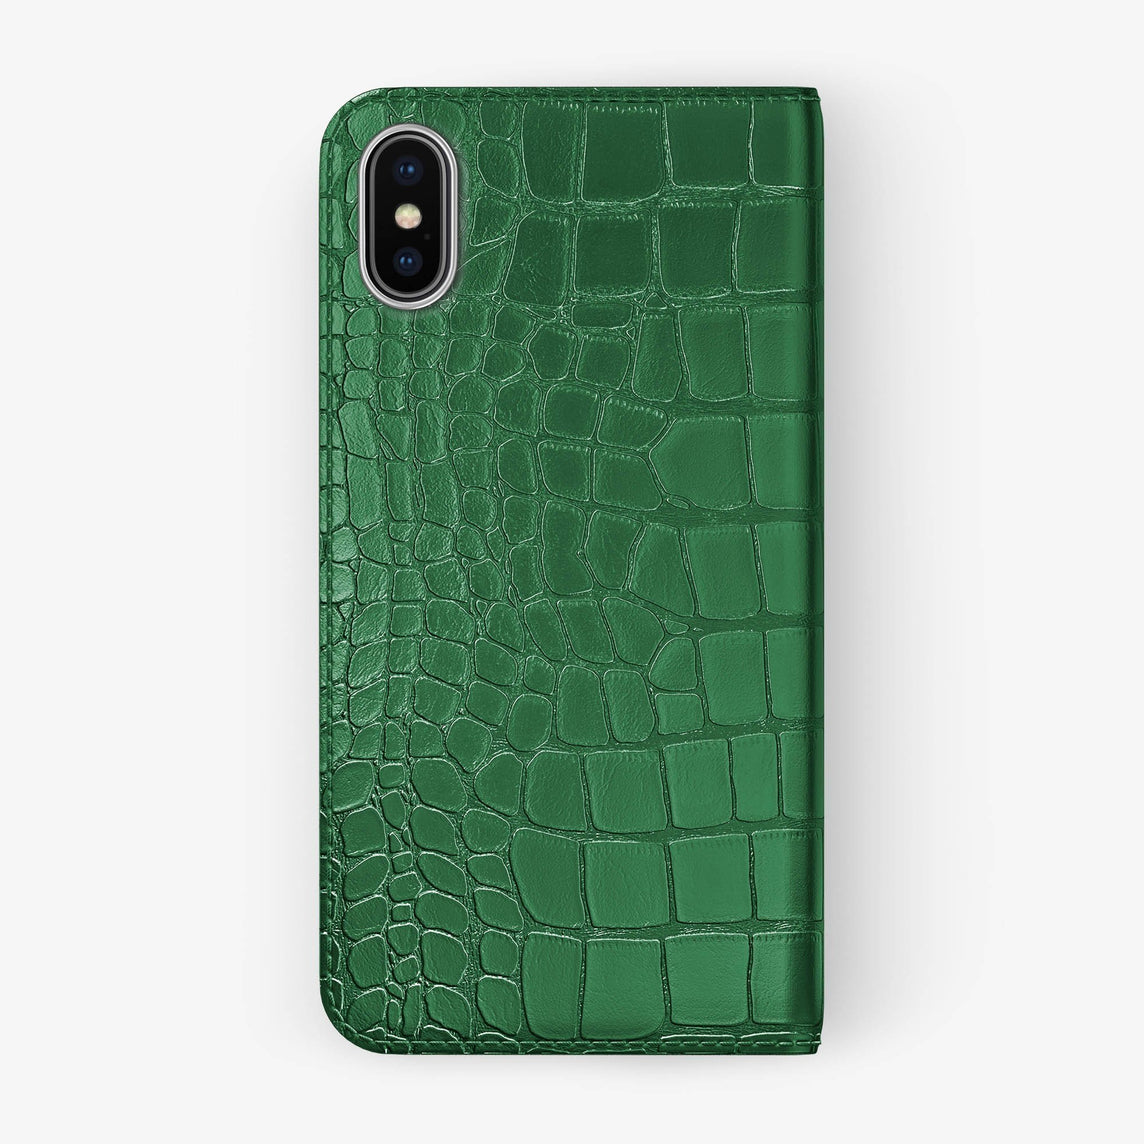 Alligator Folio Case iPhone Xs Max | Green - Stainless Steel without-personalization